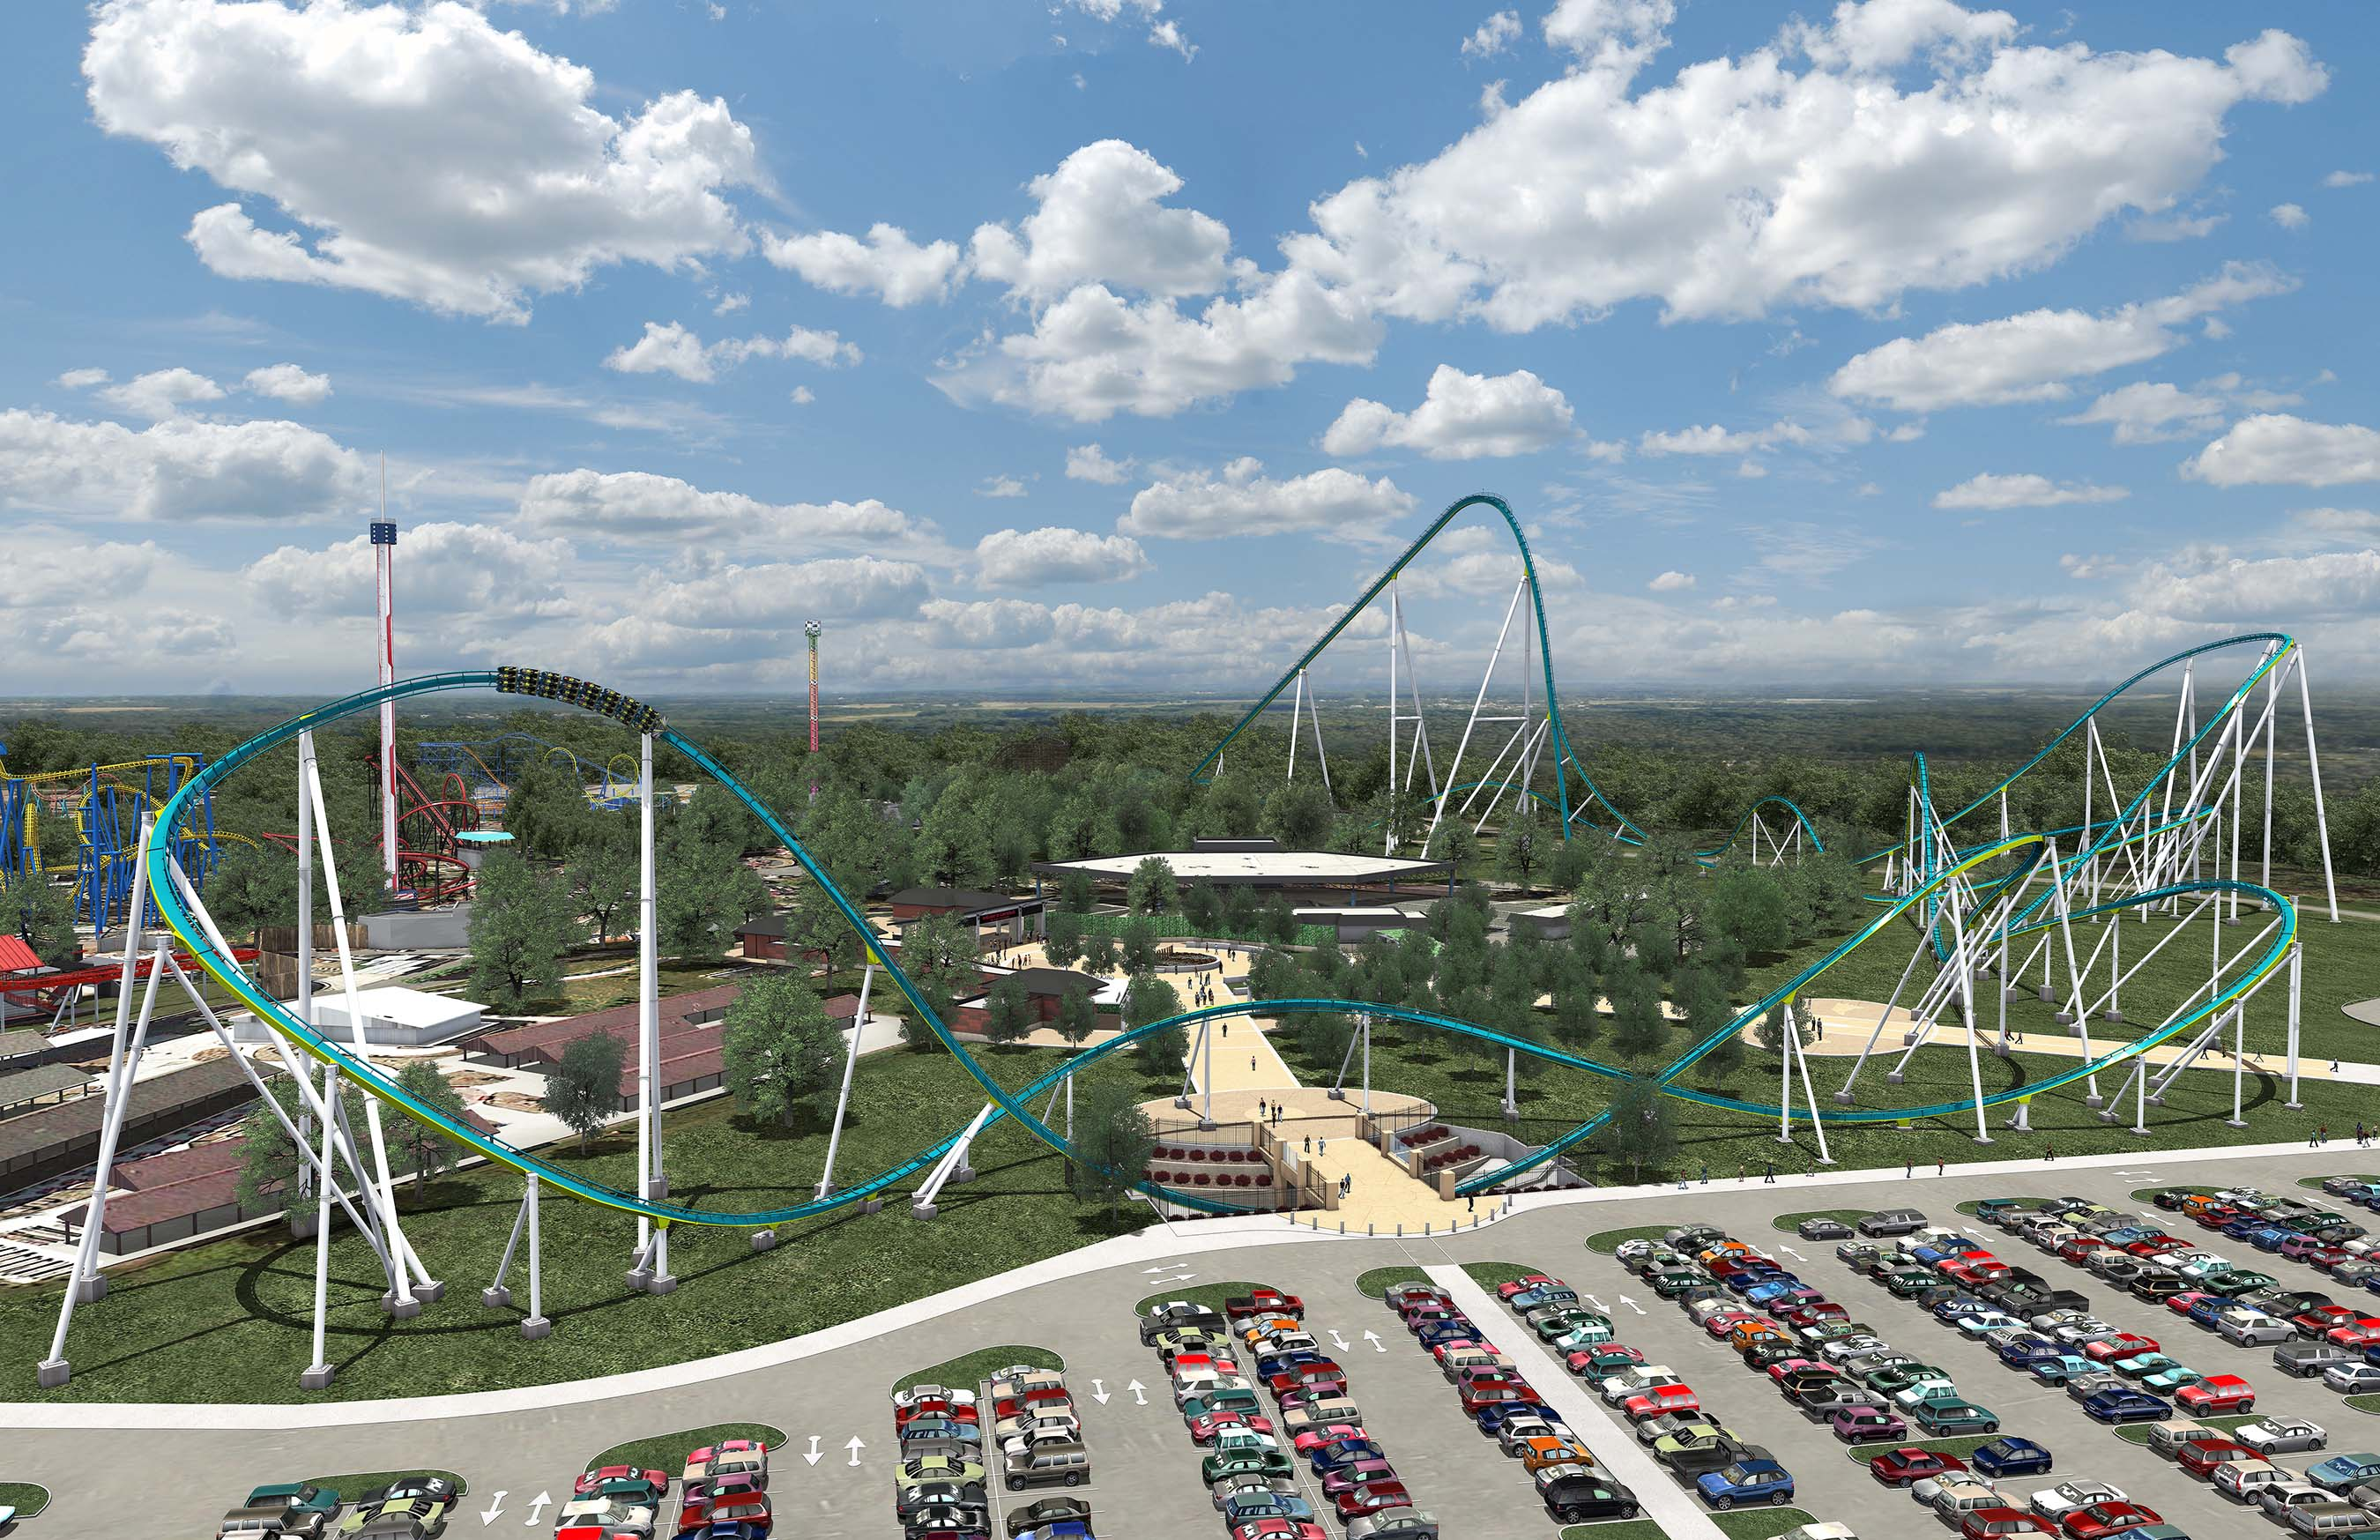 Carowinds 2015 will offer a new coaster, new entry; and a renewed focus on dining and live shows. The park is positioning itself to become a true ambassador of Carolina hospitality for years to come.